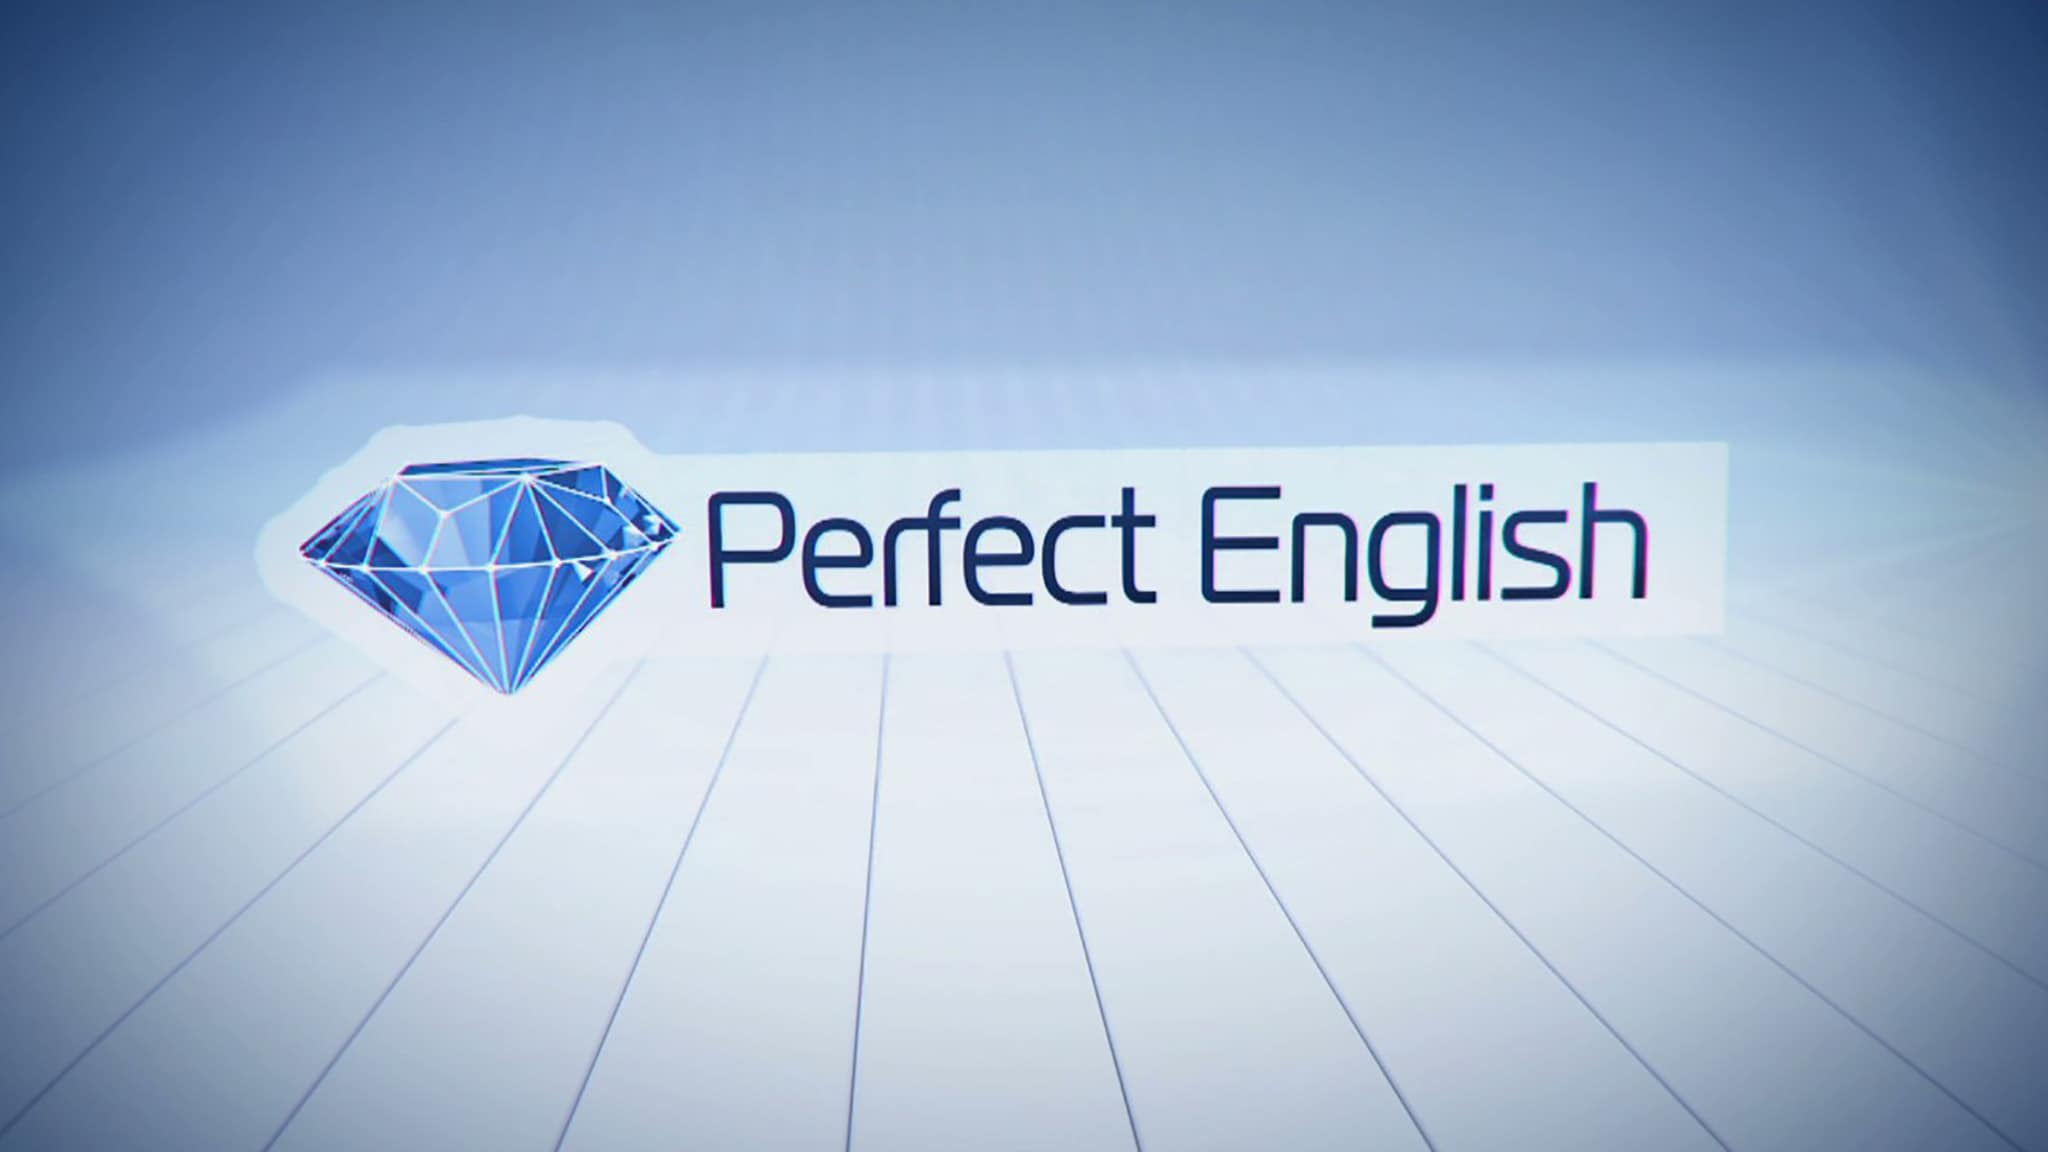 Rai Scuola Perfect English episodio 15 Replica